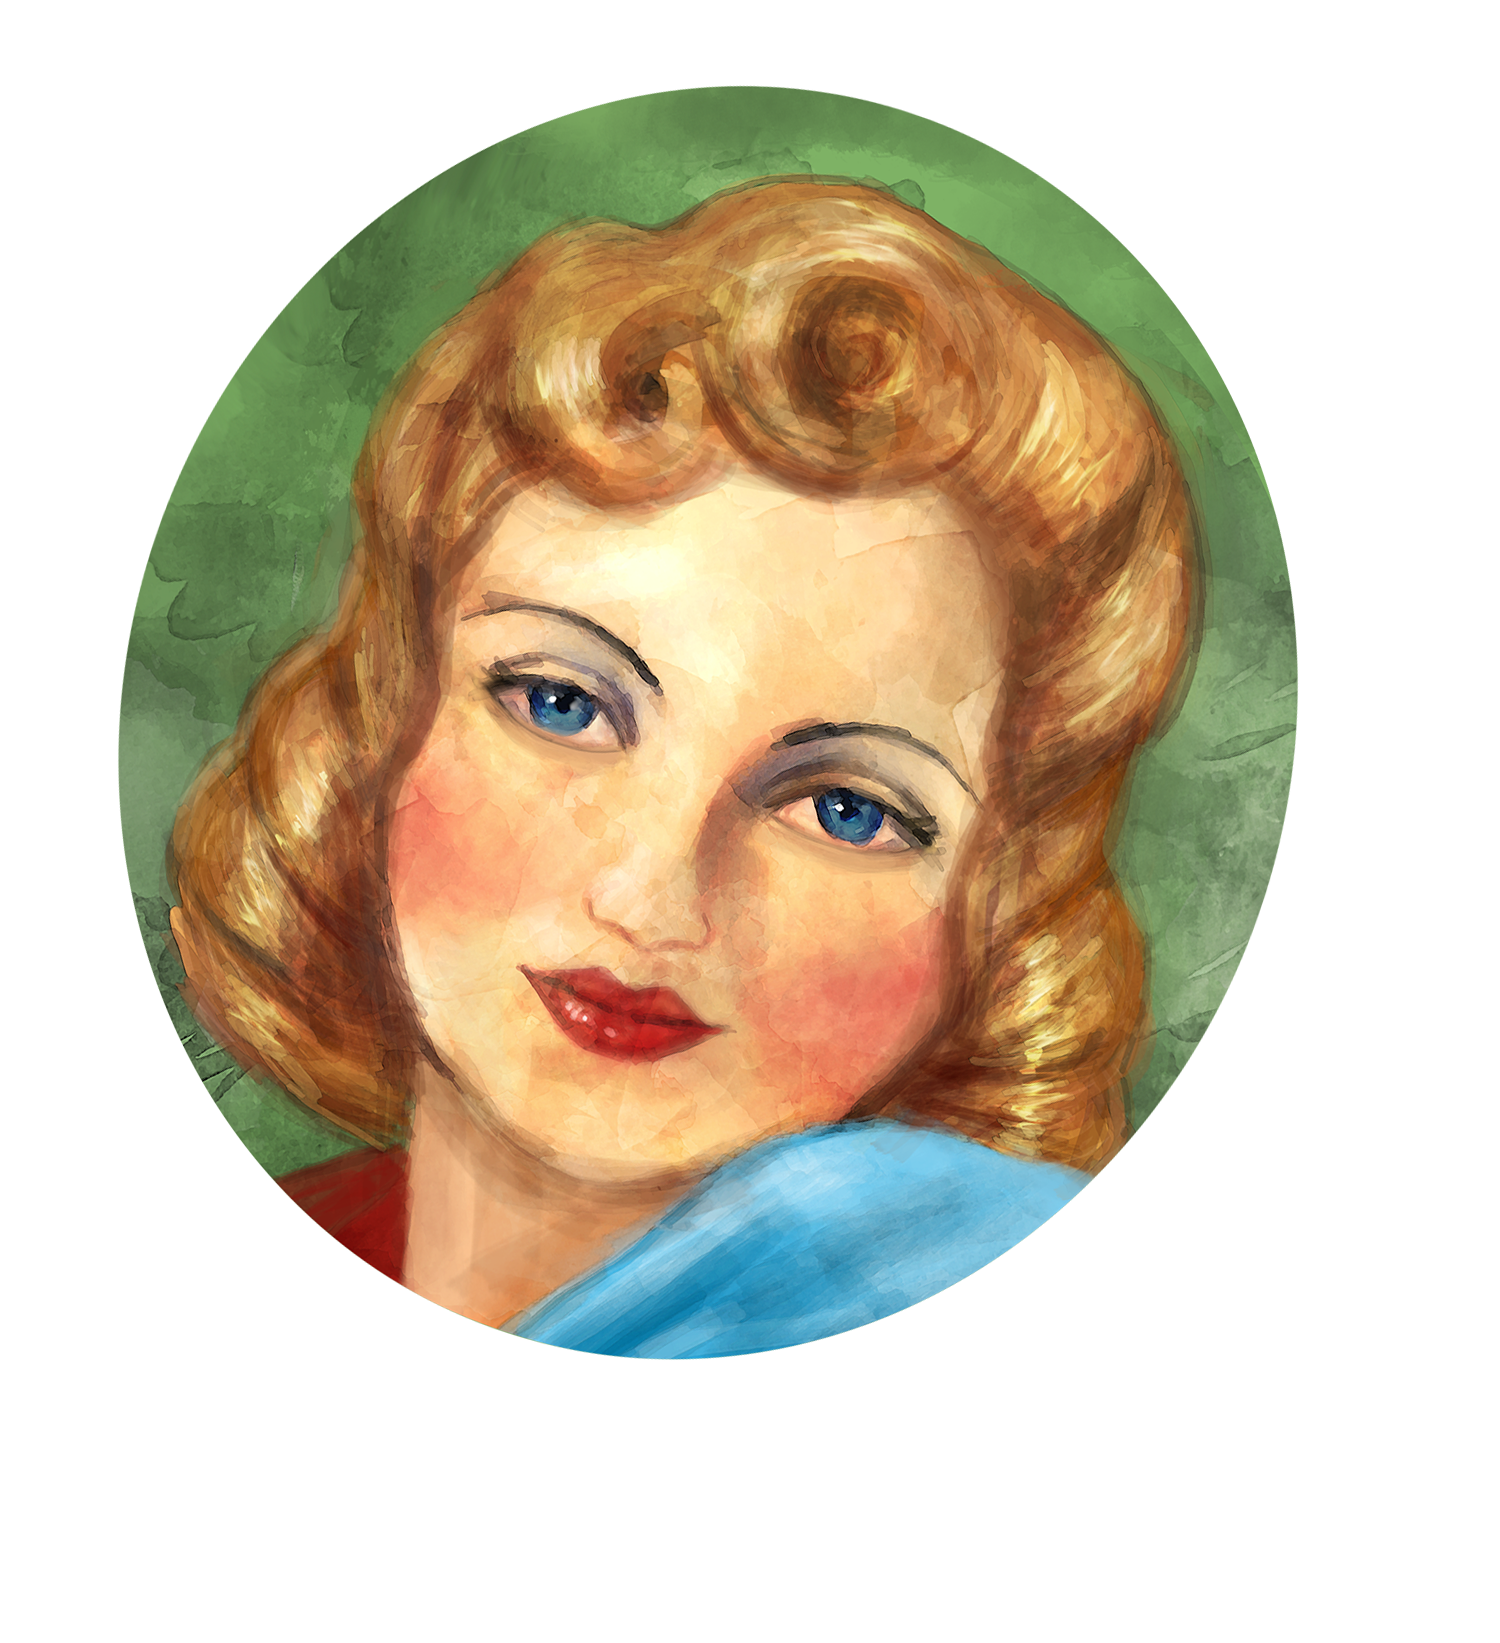 1940's woman's face